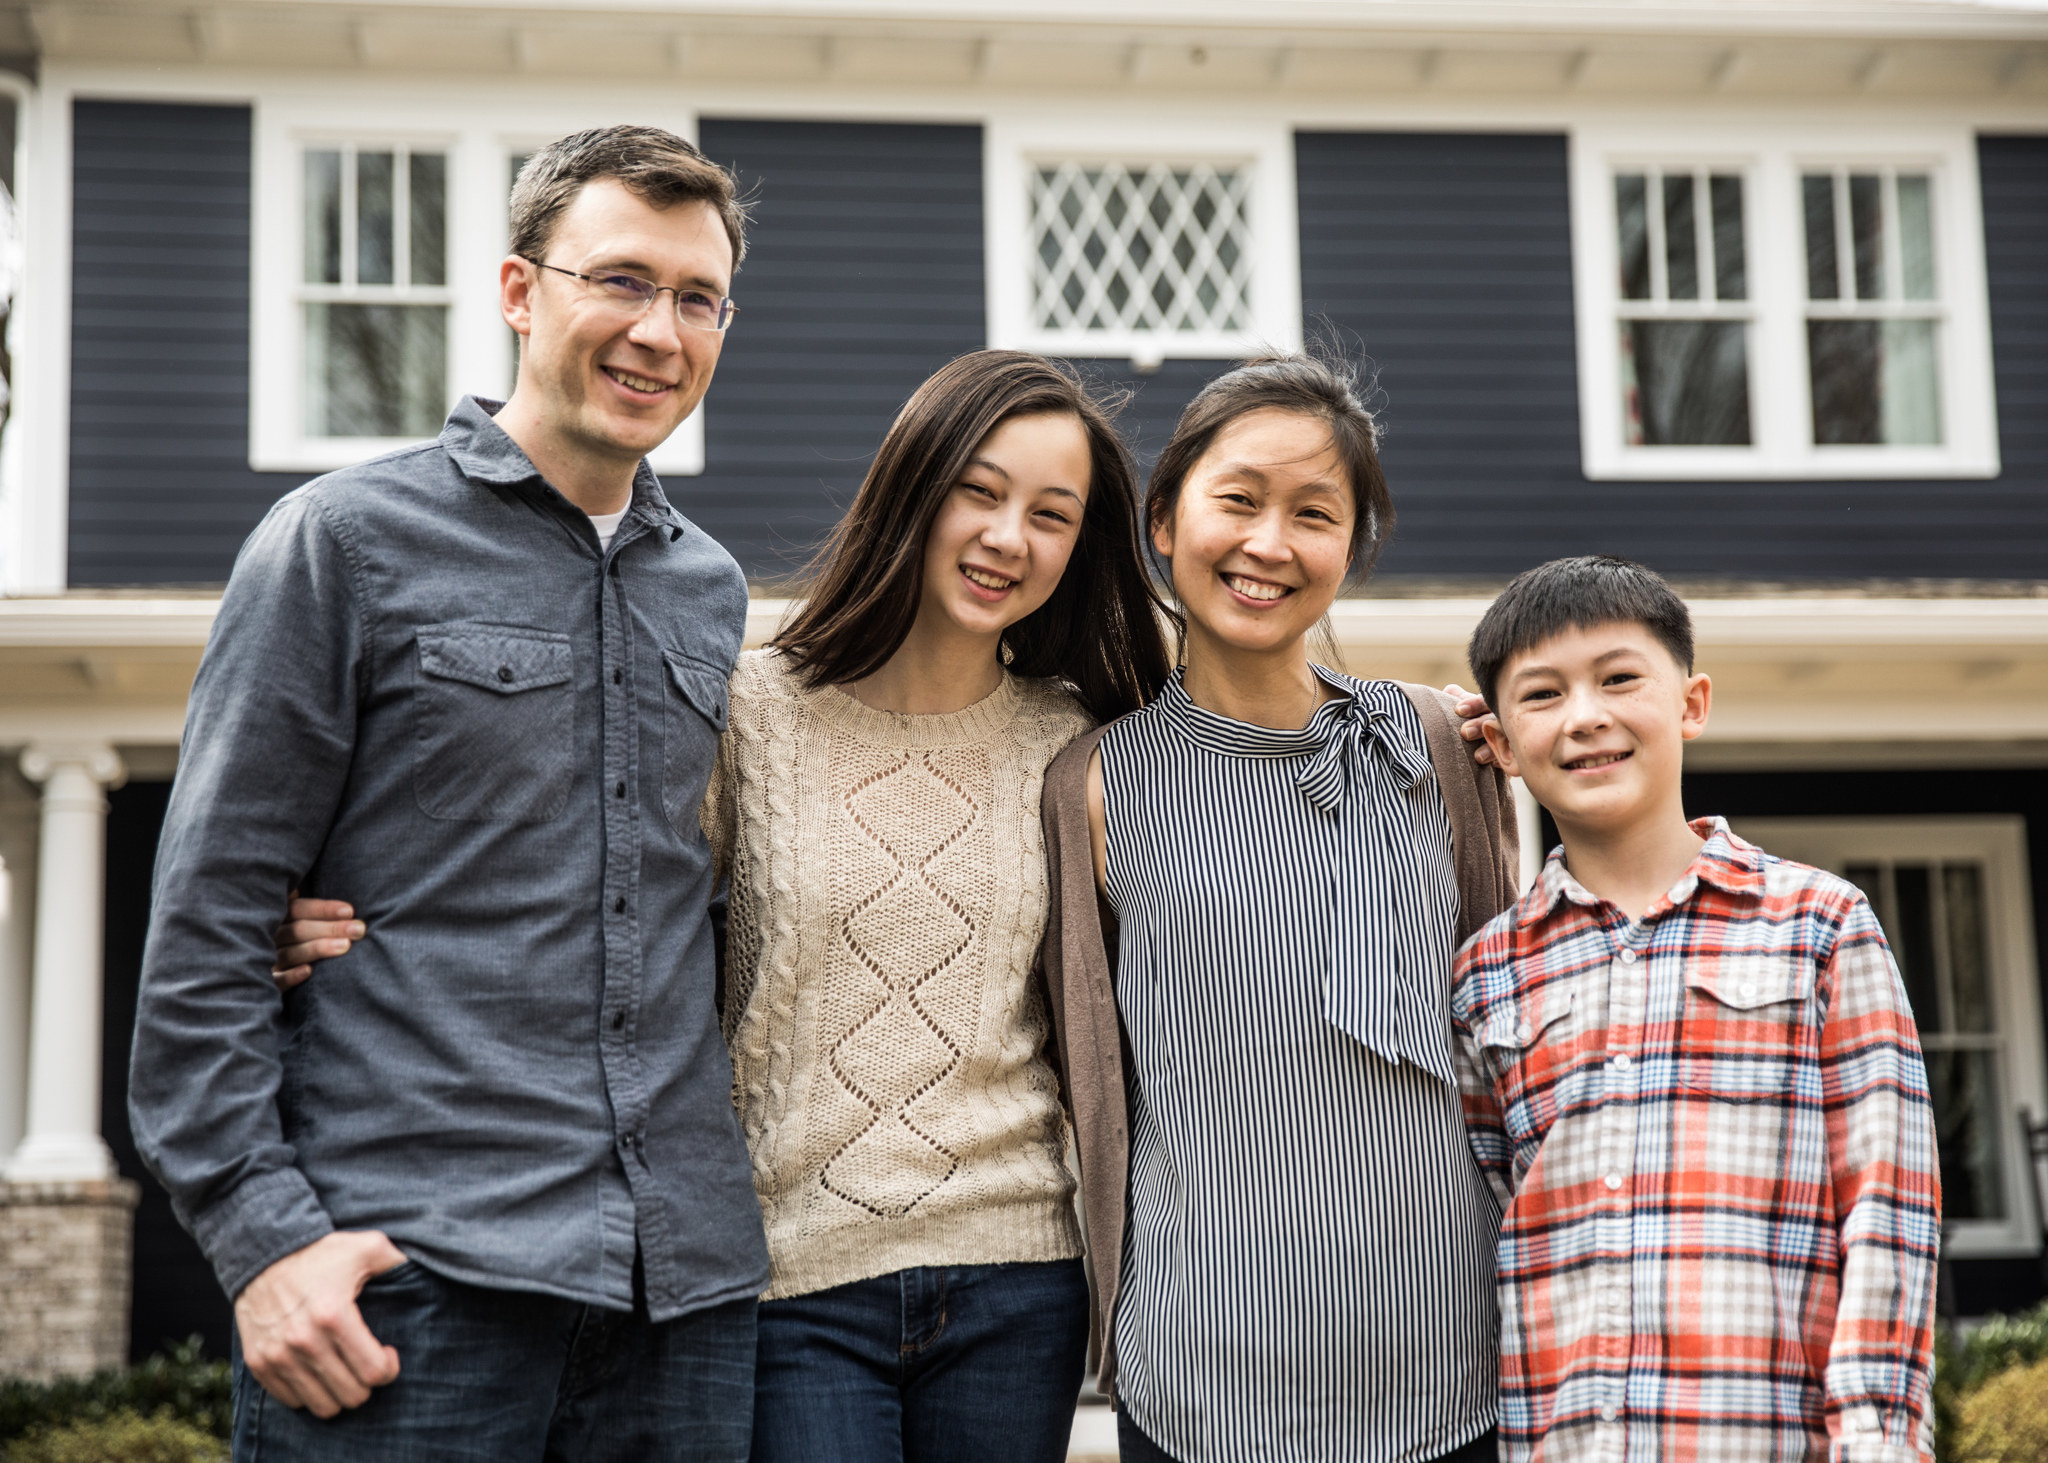 mixed race family smiling and posing together